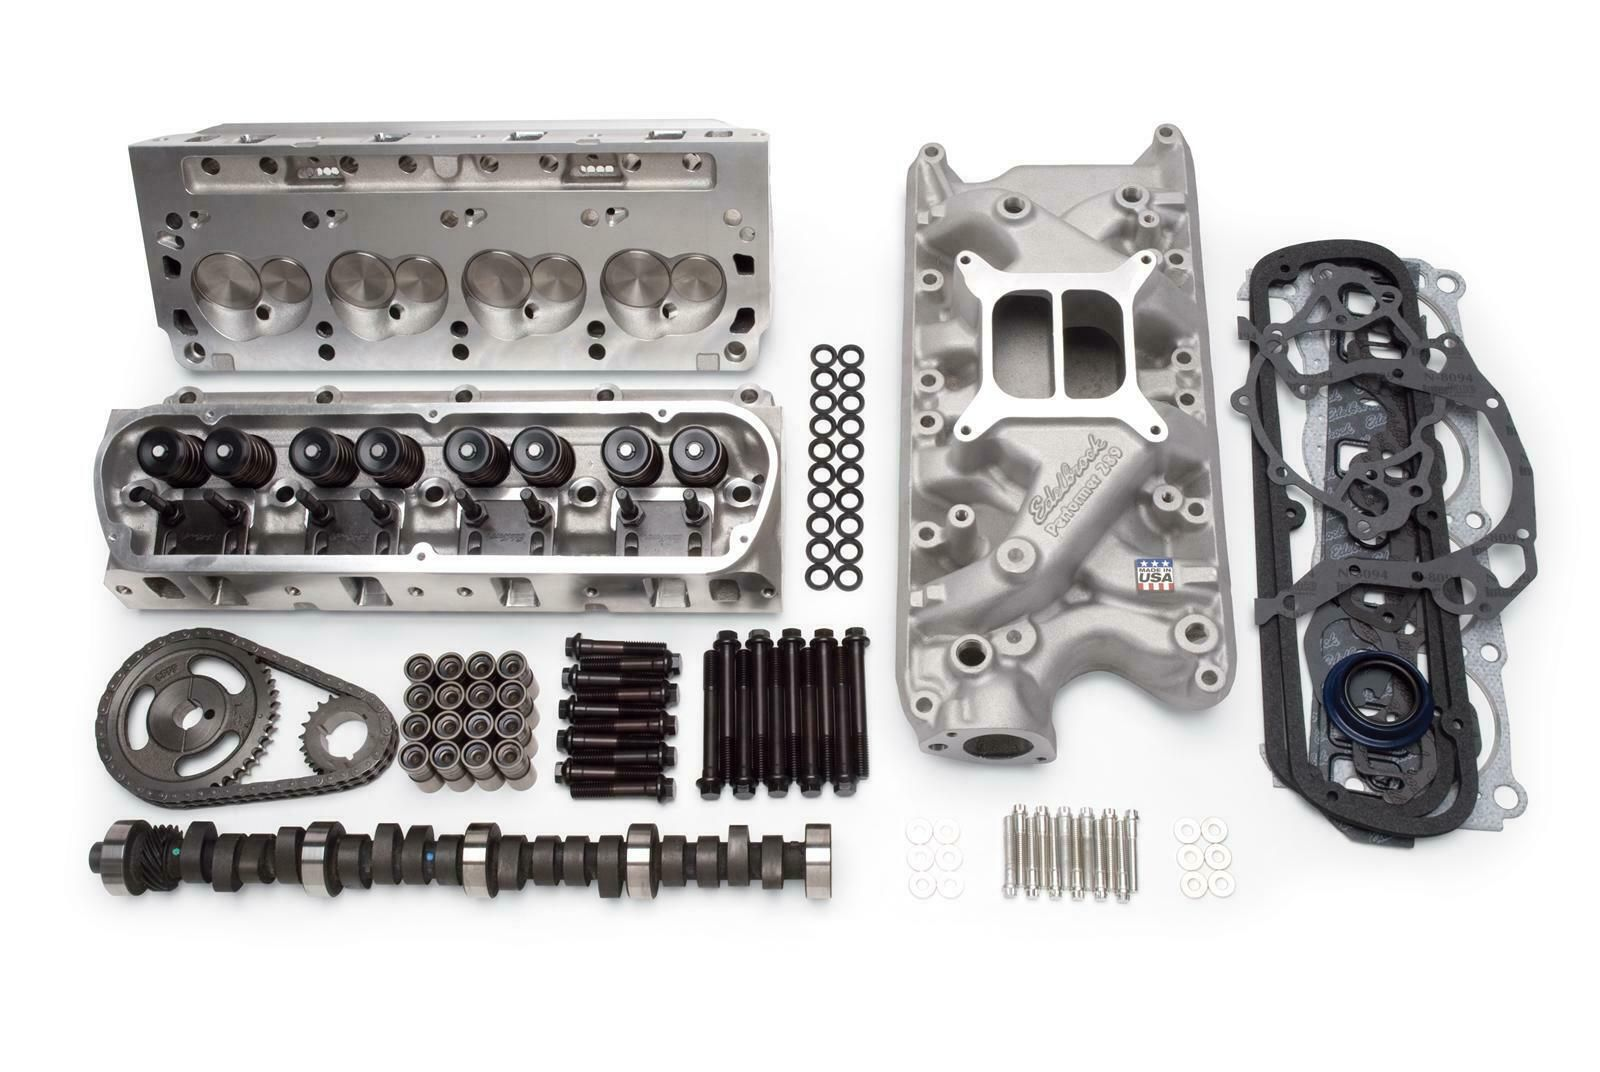 Edelbrock Power Package In 2020 Parts Accessories Top End Accessories